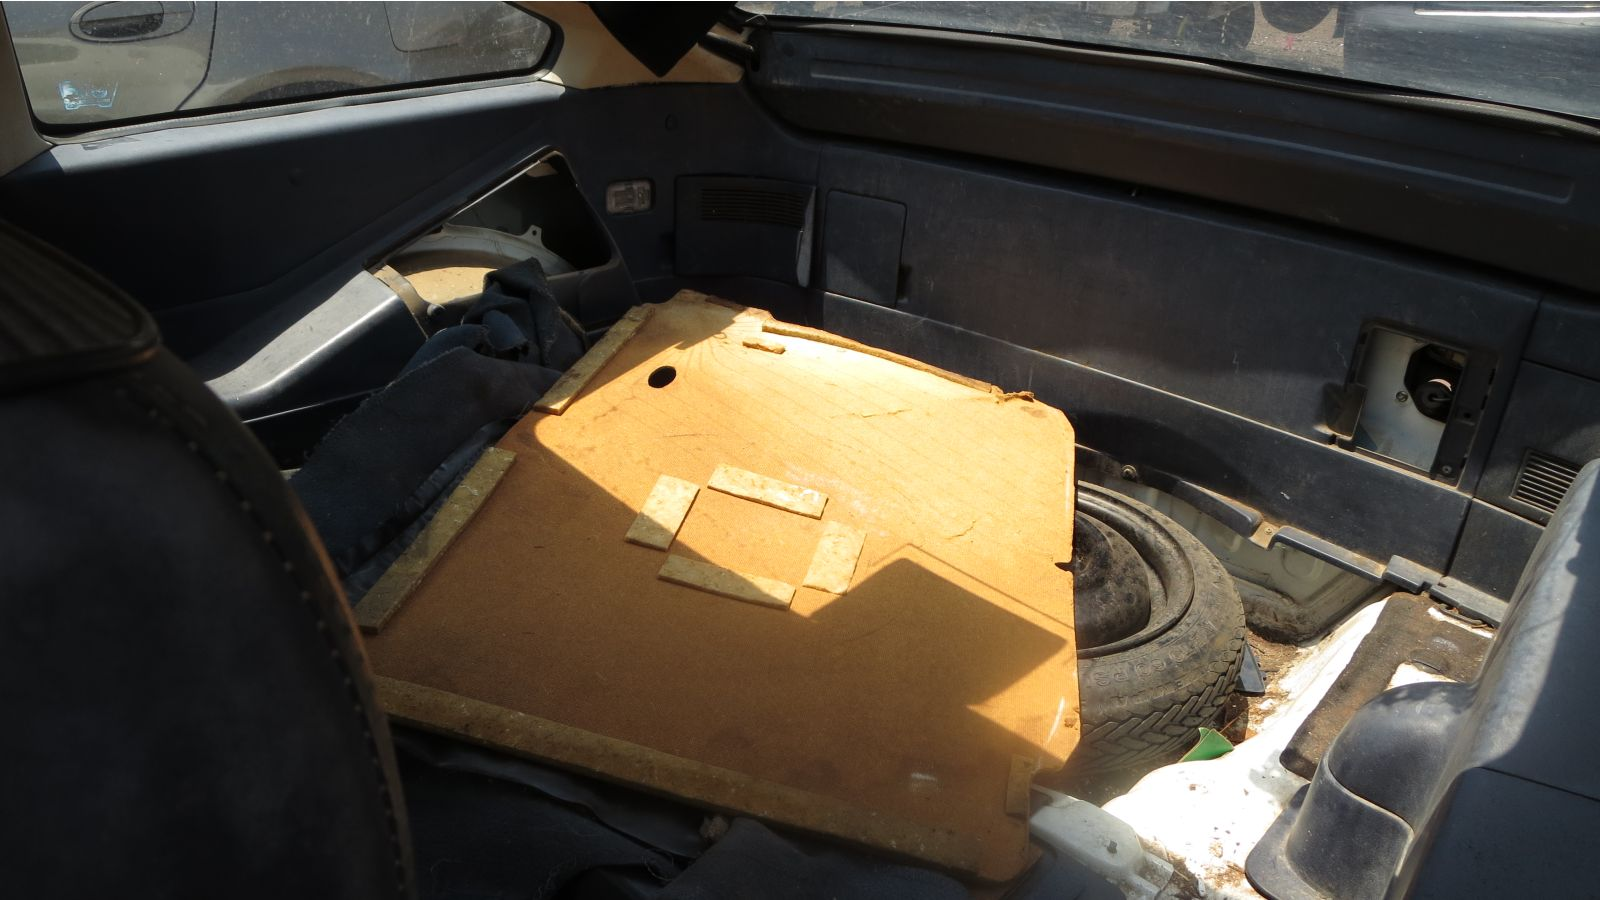 hight resolution of fun crx fact you can fit 8 foot long 2x4s in a crx with nothing sticking out they ll fit with one end in the left rear corner of the cargo area and the